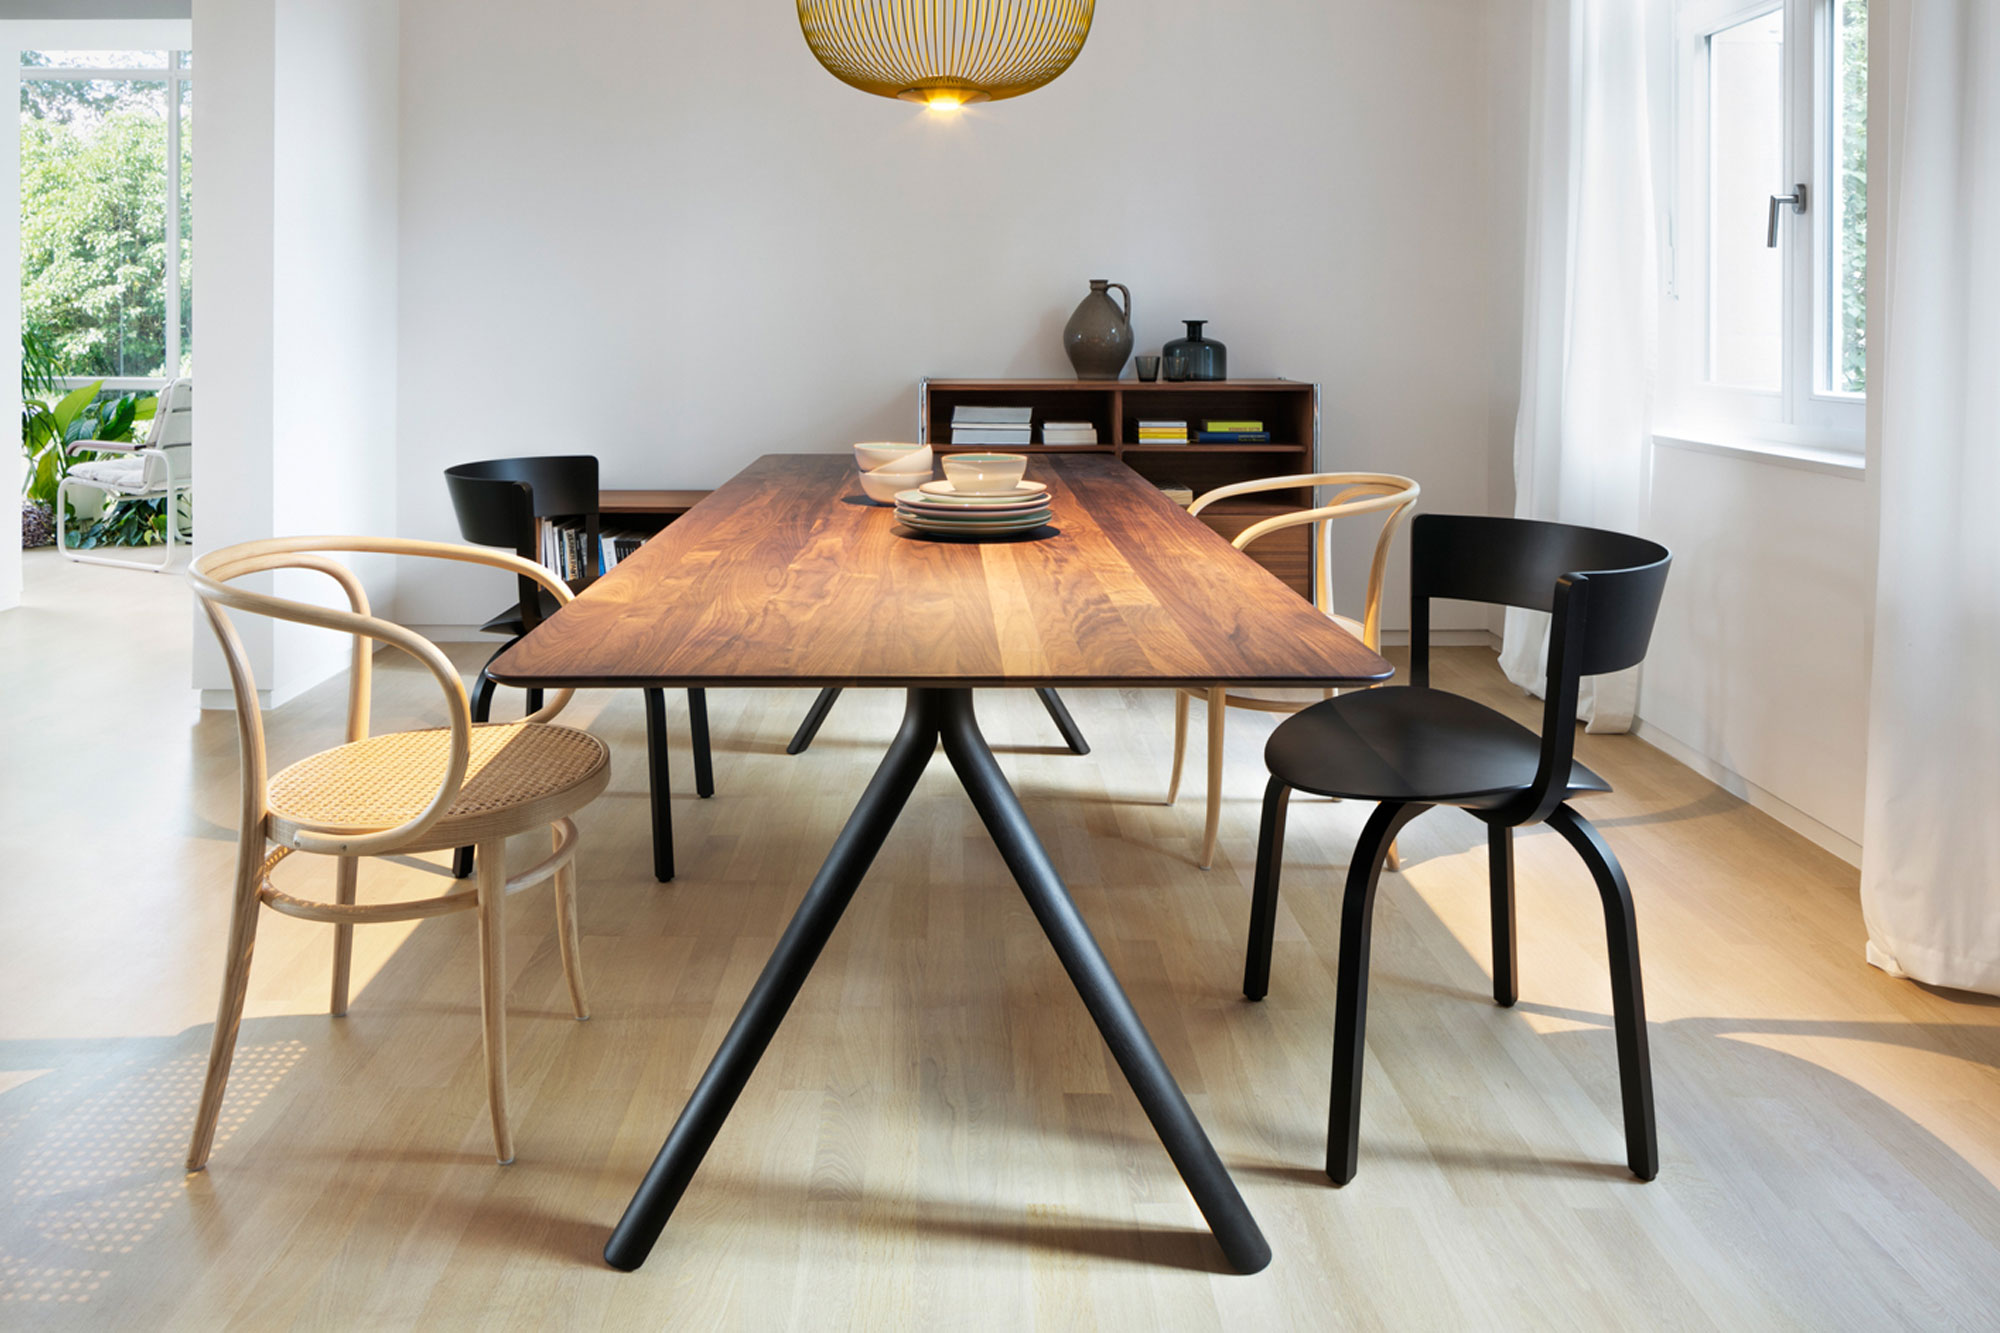 morgen-handelspartner-thonet